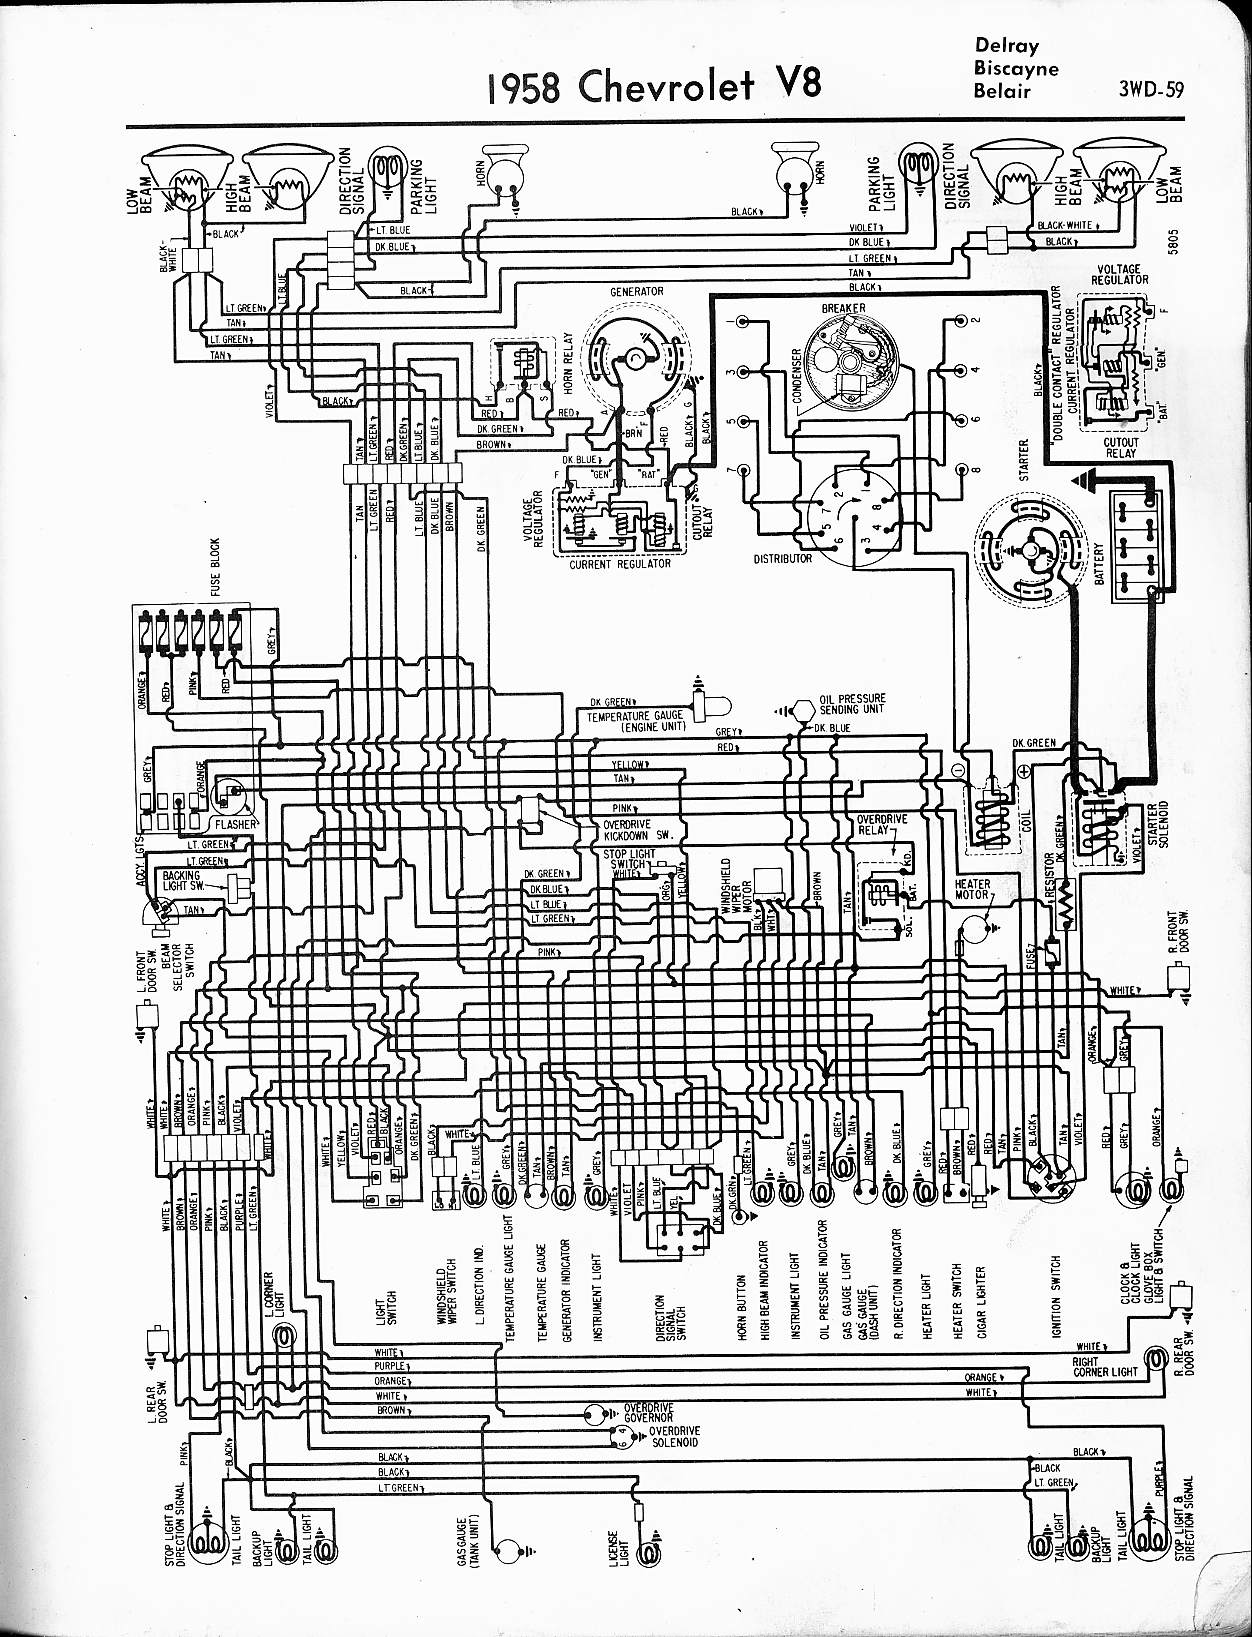 57 65 chevy wiring diagrams rh oldcarmanualproject com 1975 Chevy Truck Wiring Diagram 1987 Chevy Wiring Diagram